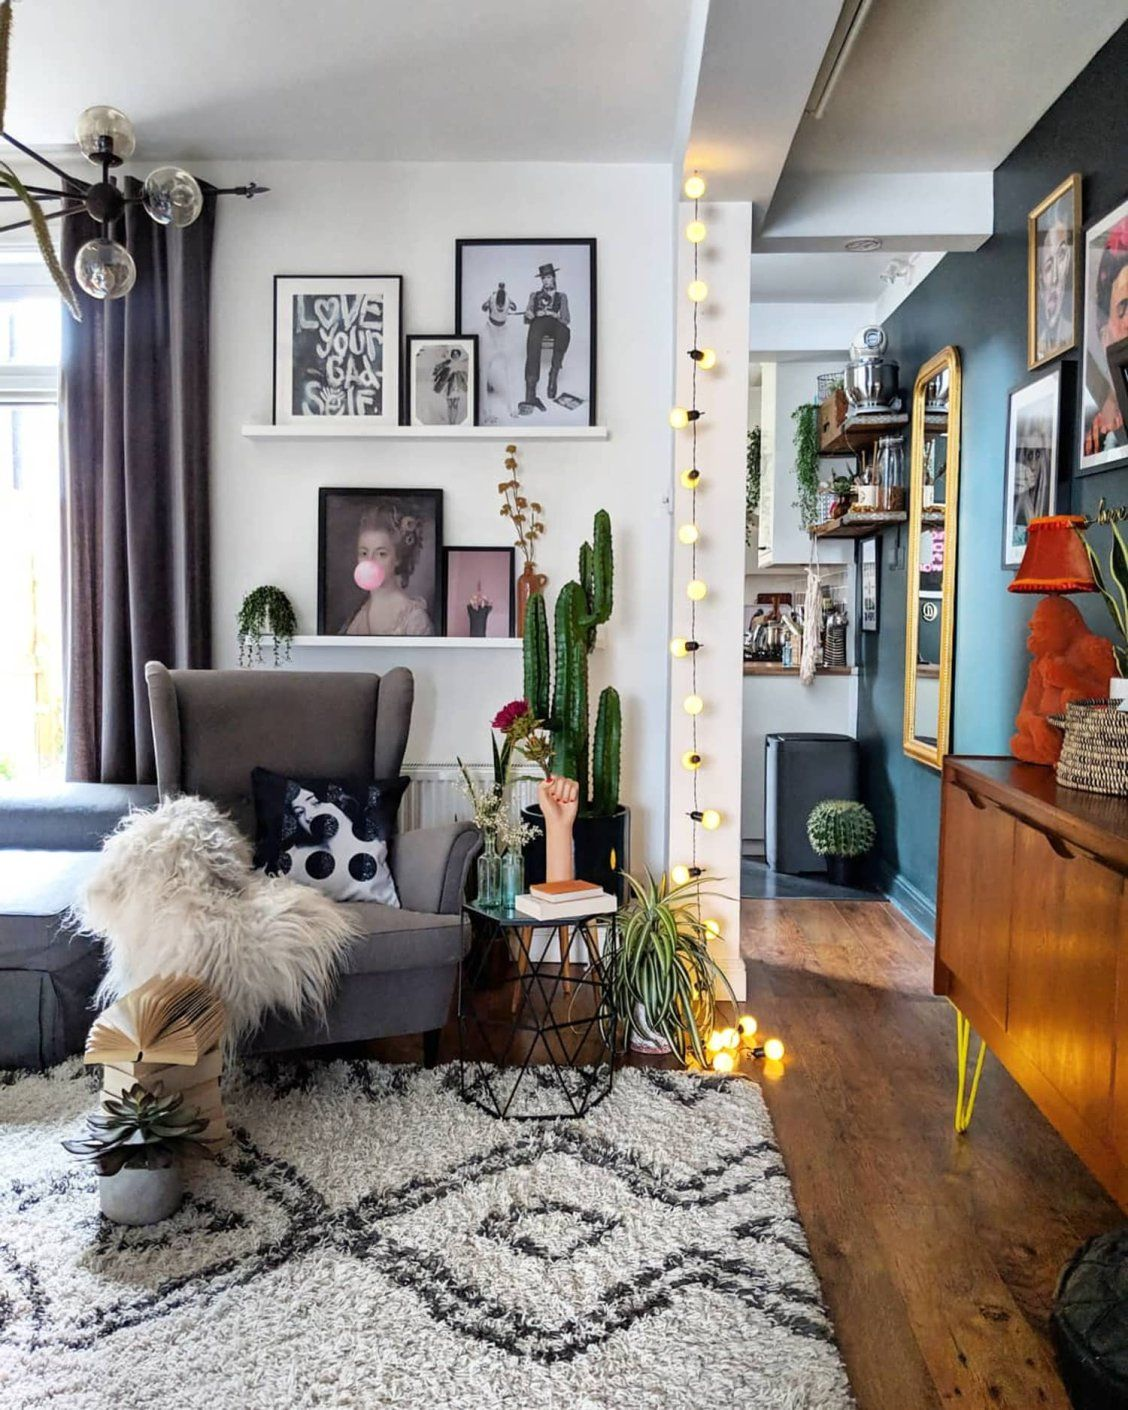 Find Tons Of Decor Inspiration In This Quirky And Colorful Uk Home Quirky Home Decor Eclectic Home Stylish Living Room